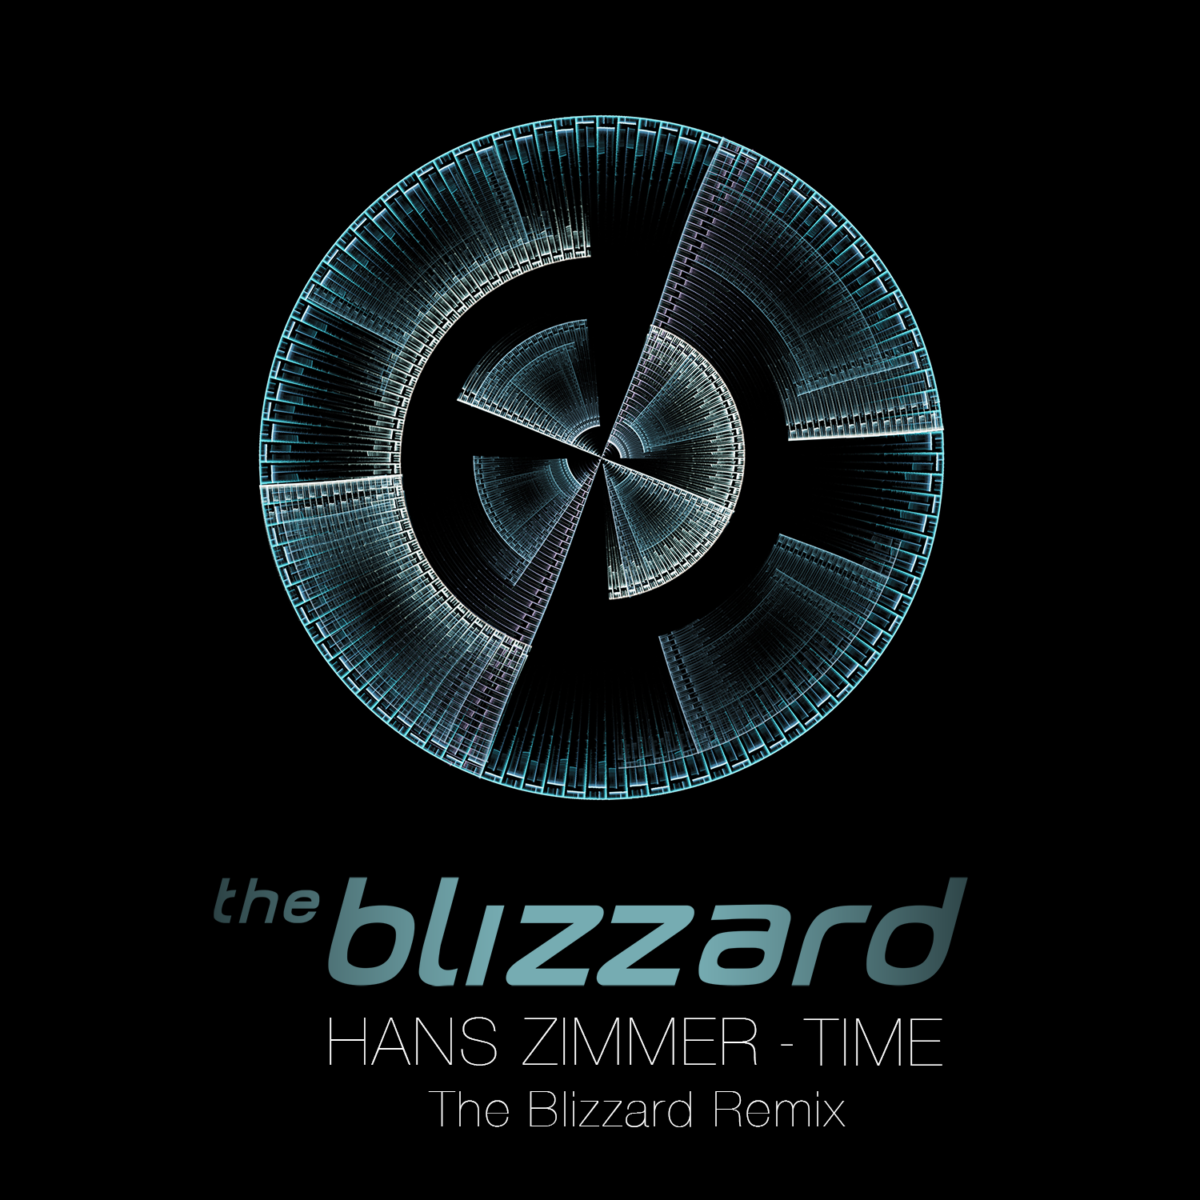 The Blizzard - Han Zimmer Time (The Blizzard Remix)